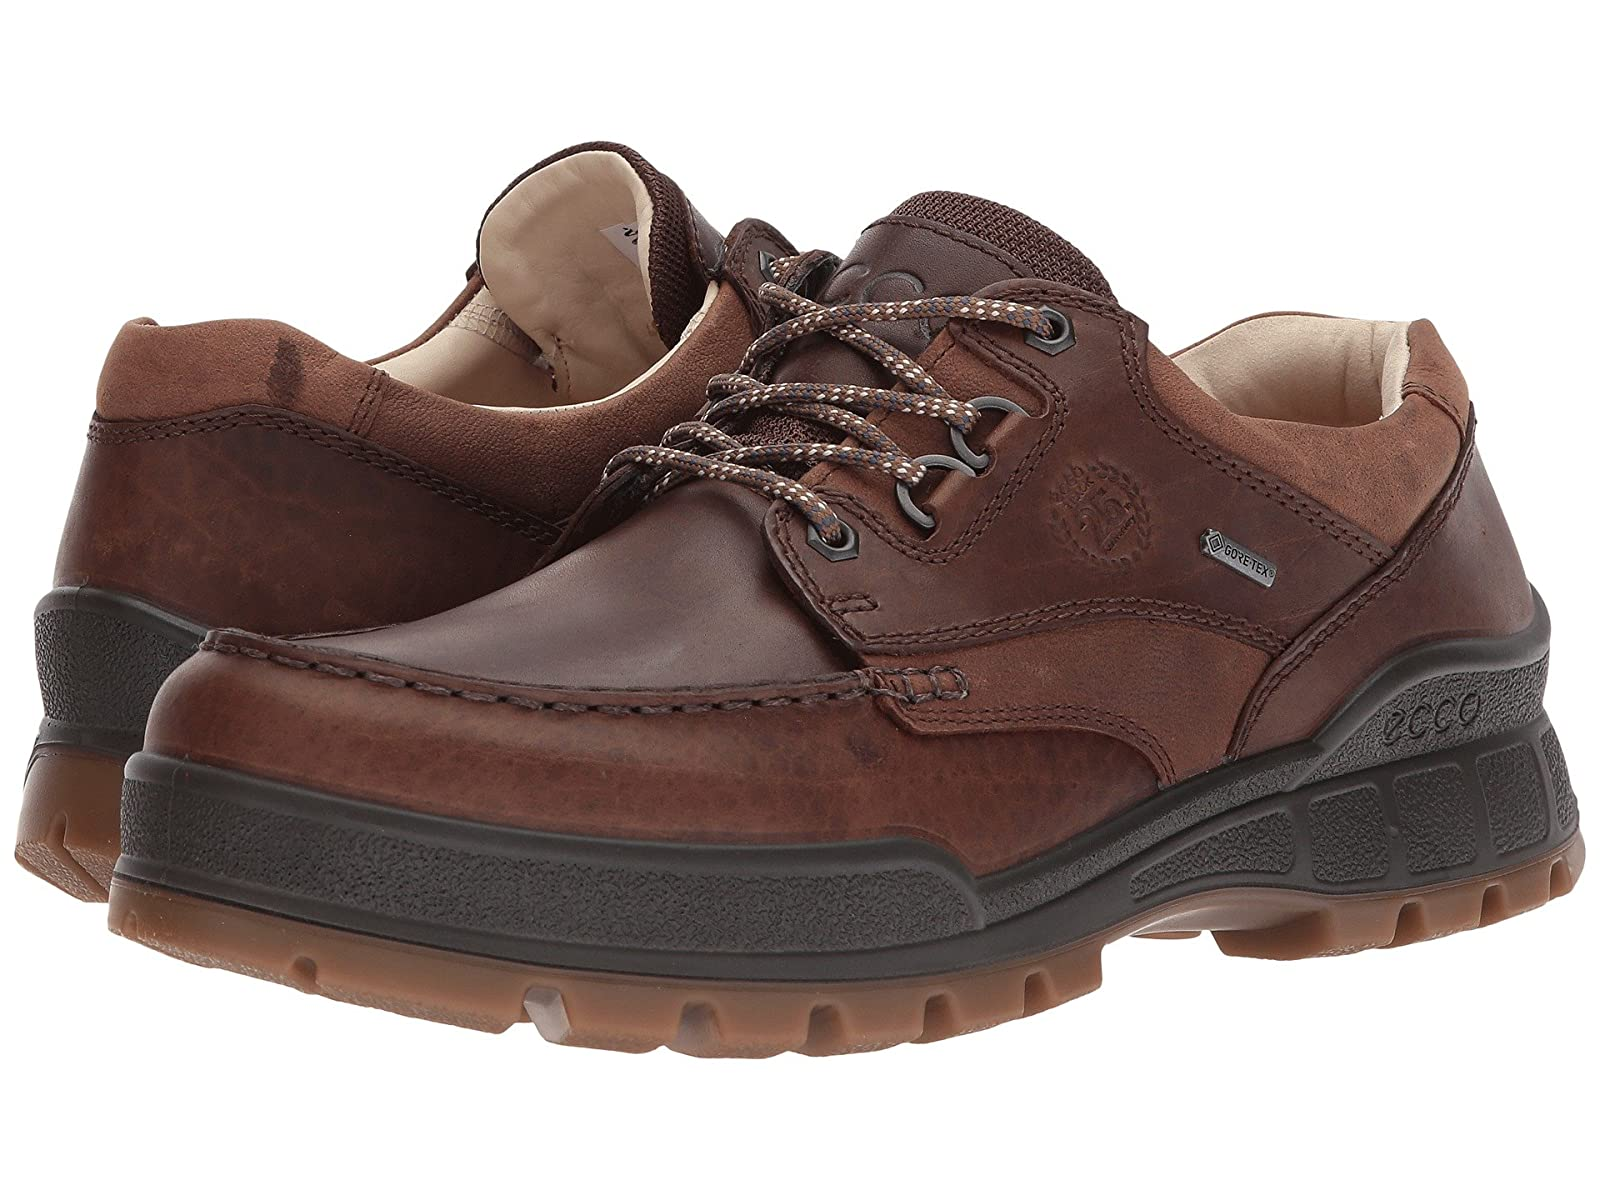 ECCO Track 25 Premium LowAtmospheric grades have affordable shoes